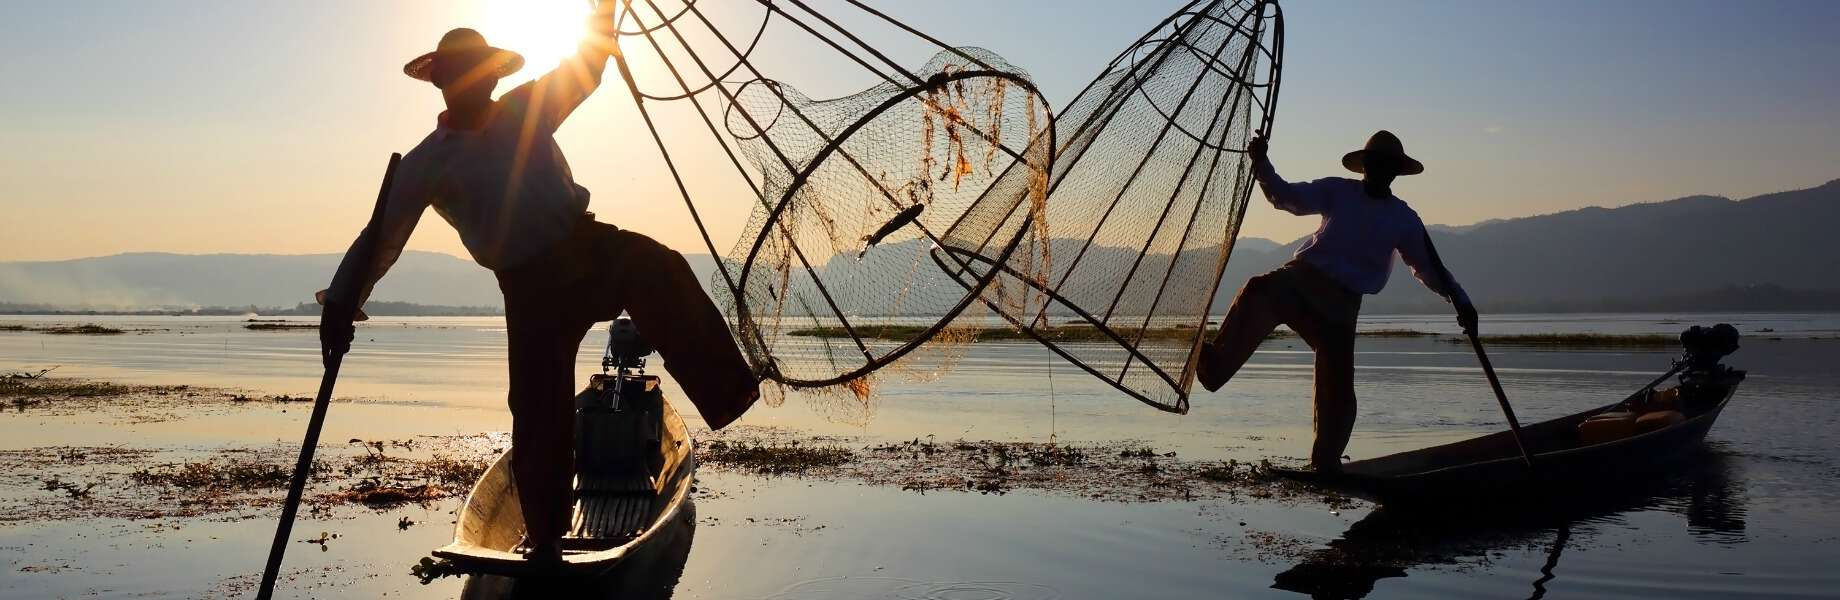 Myanmar Family Adventure - Fishermen of Inle Lake